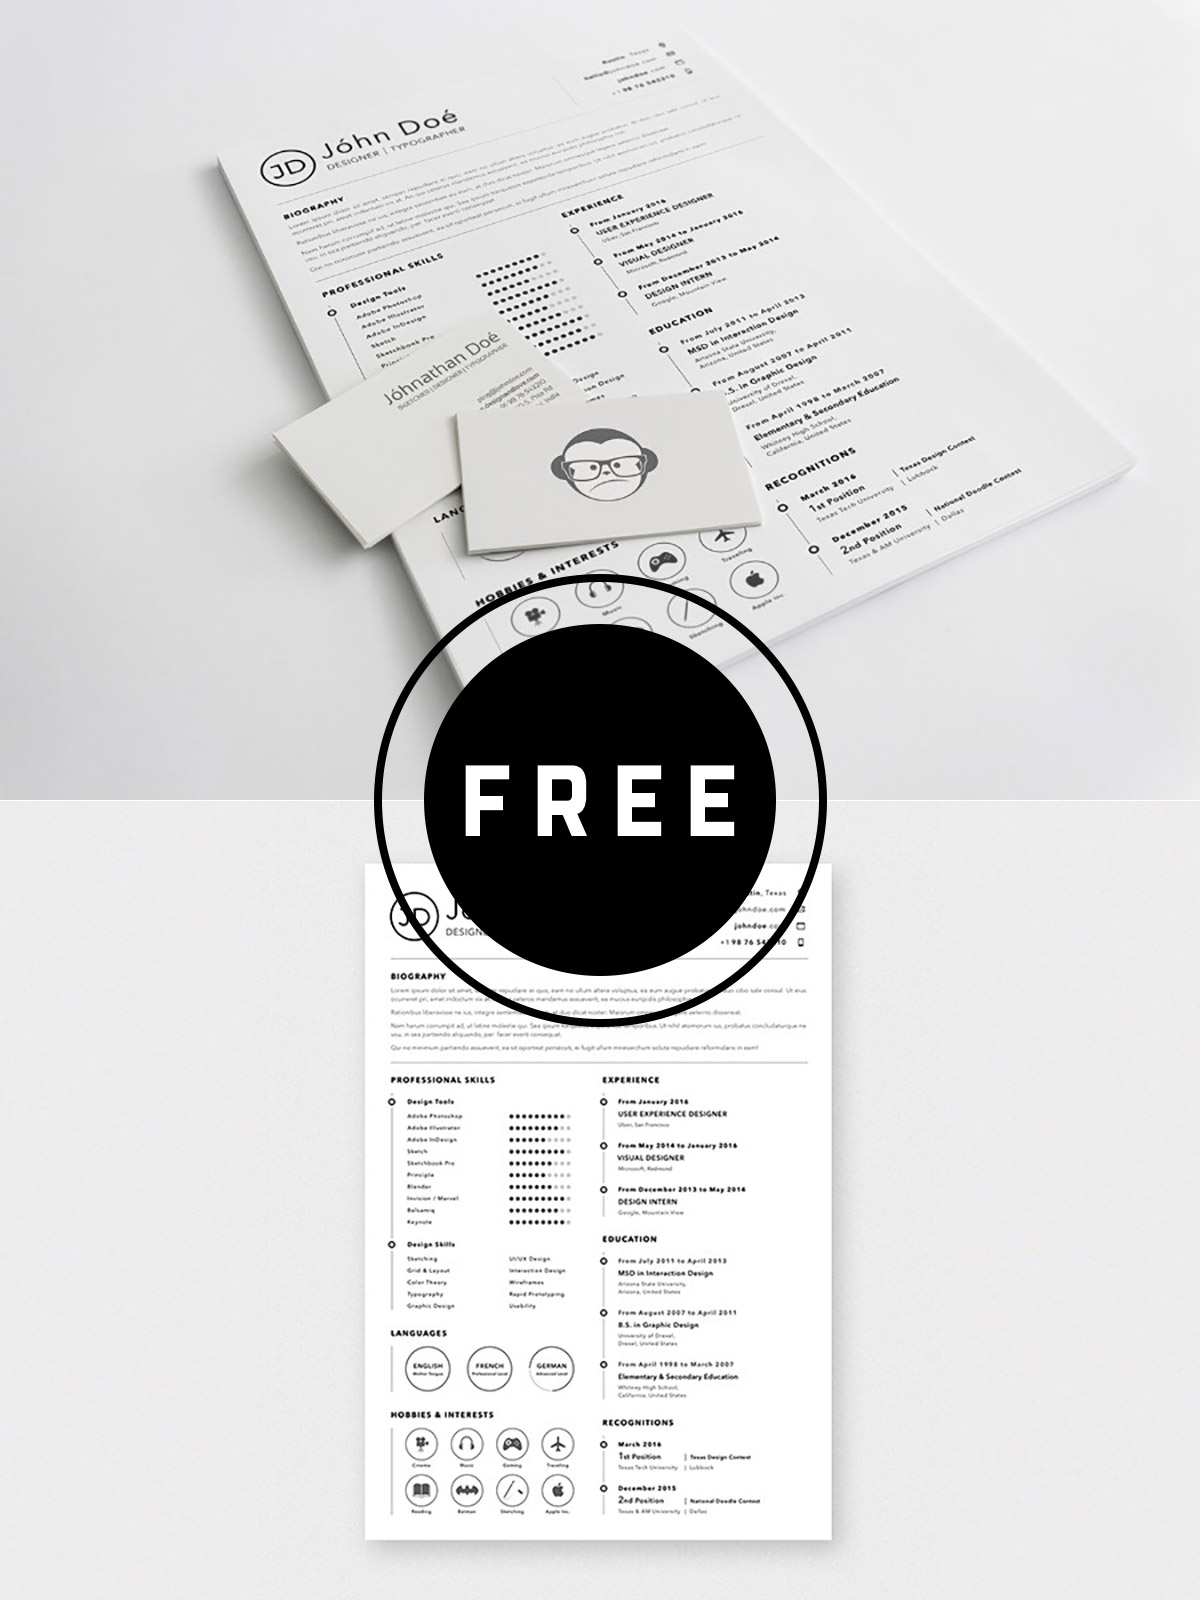 98 Awesome Free Resume Templates for 2019